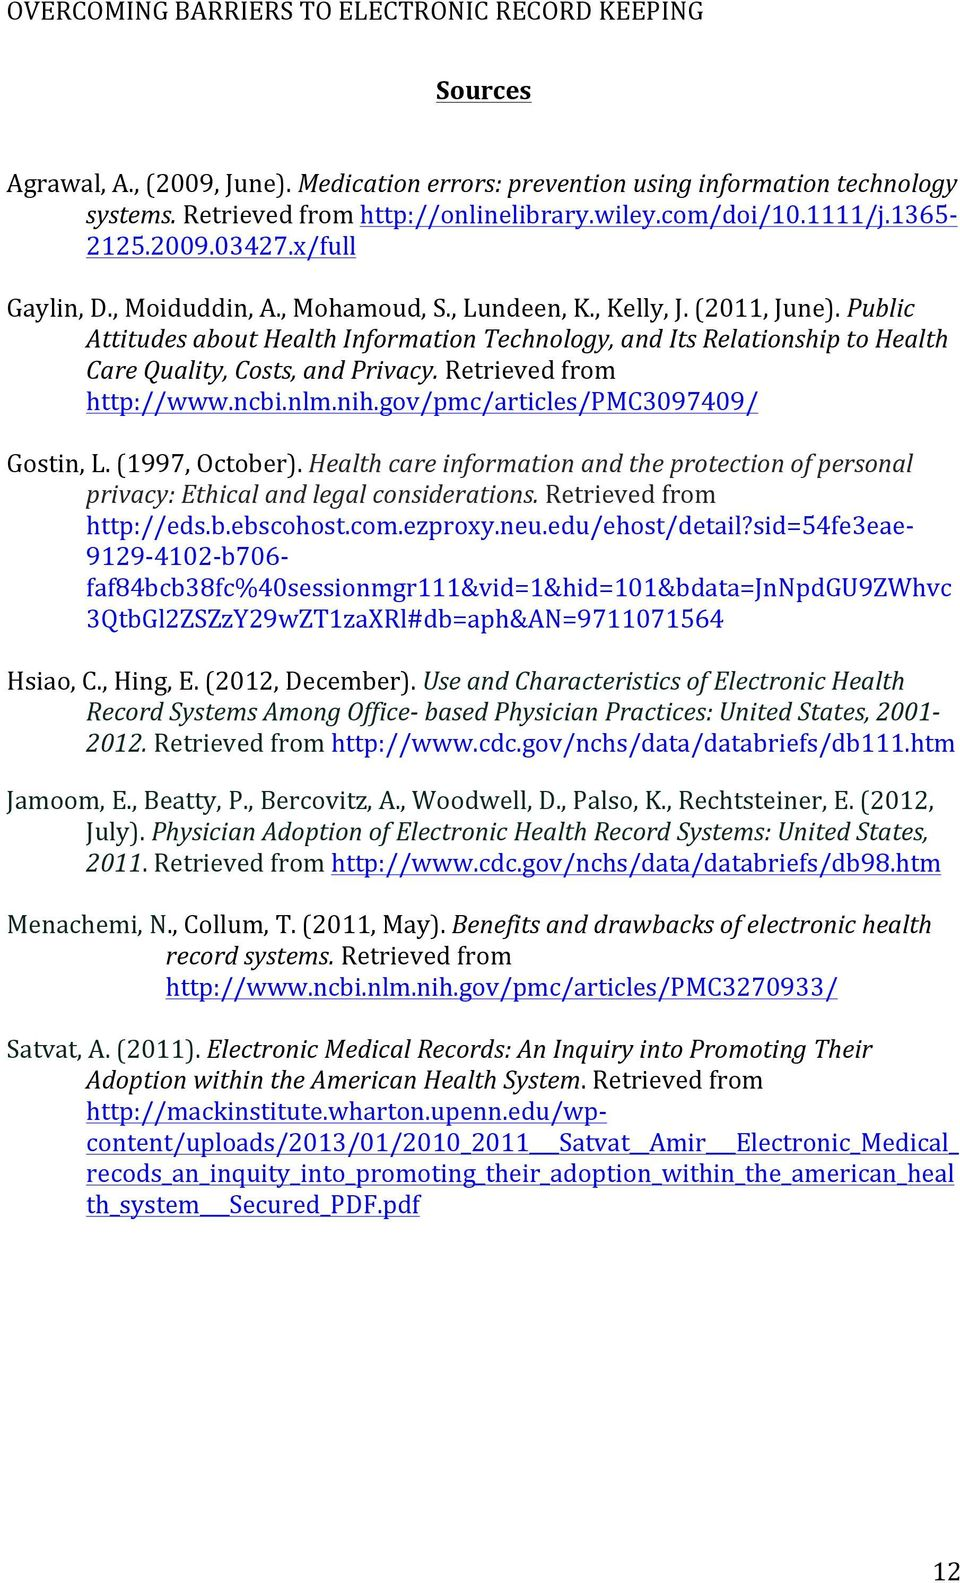 Public Attitudes about Health Information Technology, and Its Relationship to Health Care Quality, Costs, and Privacy. Retrieved from http://www.ncbi.nlm.nih.gov/pmc/articles/pmc3097409/ Gostin, L.